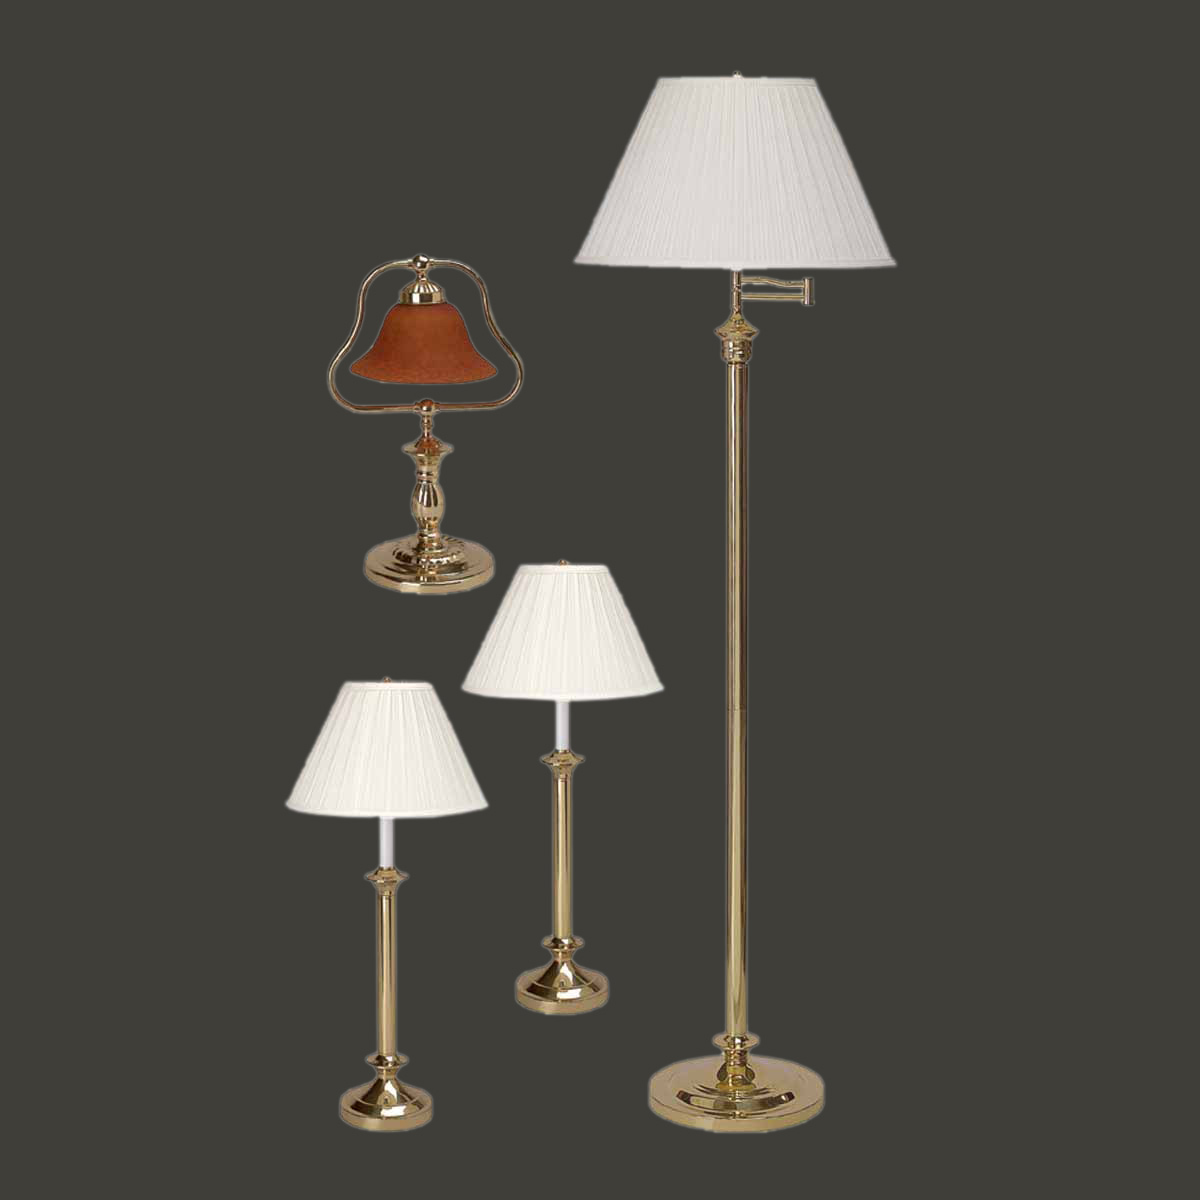 funky thomasville lamp unusual light ways lamps very interior to room elegance corner dining reading photo bright the lights tall elegant for floor lighting designer living